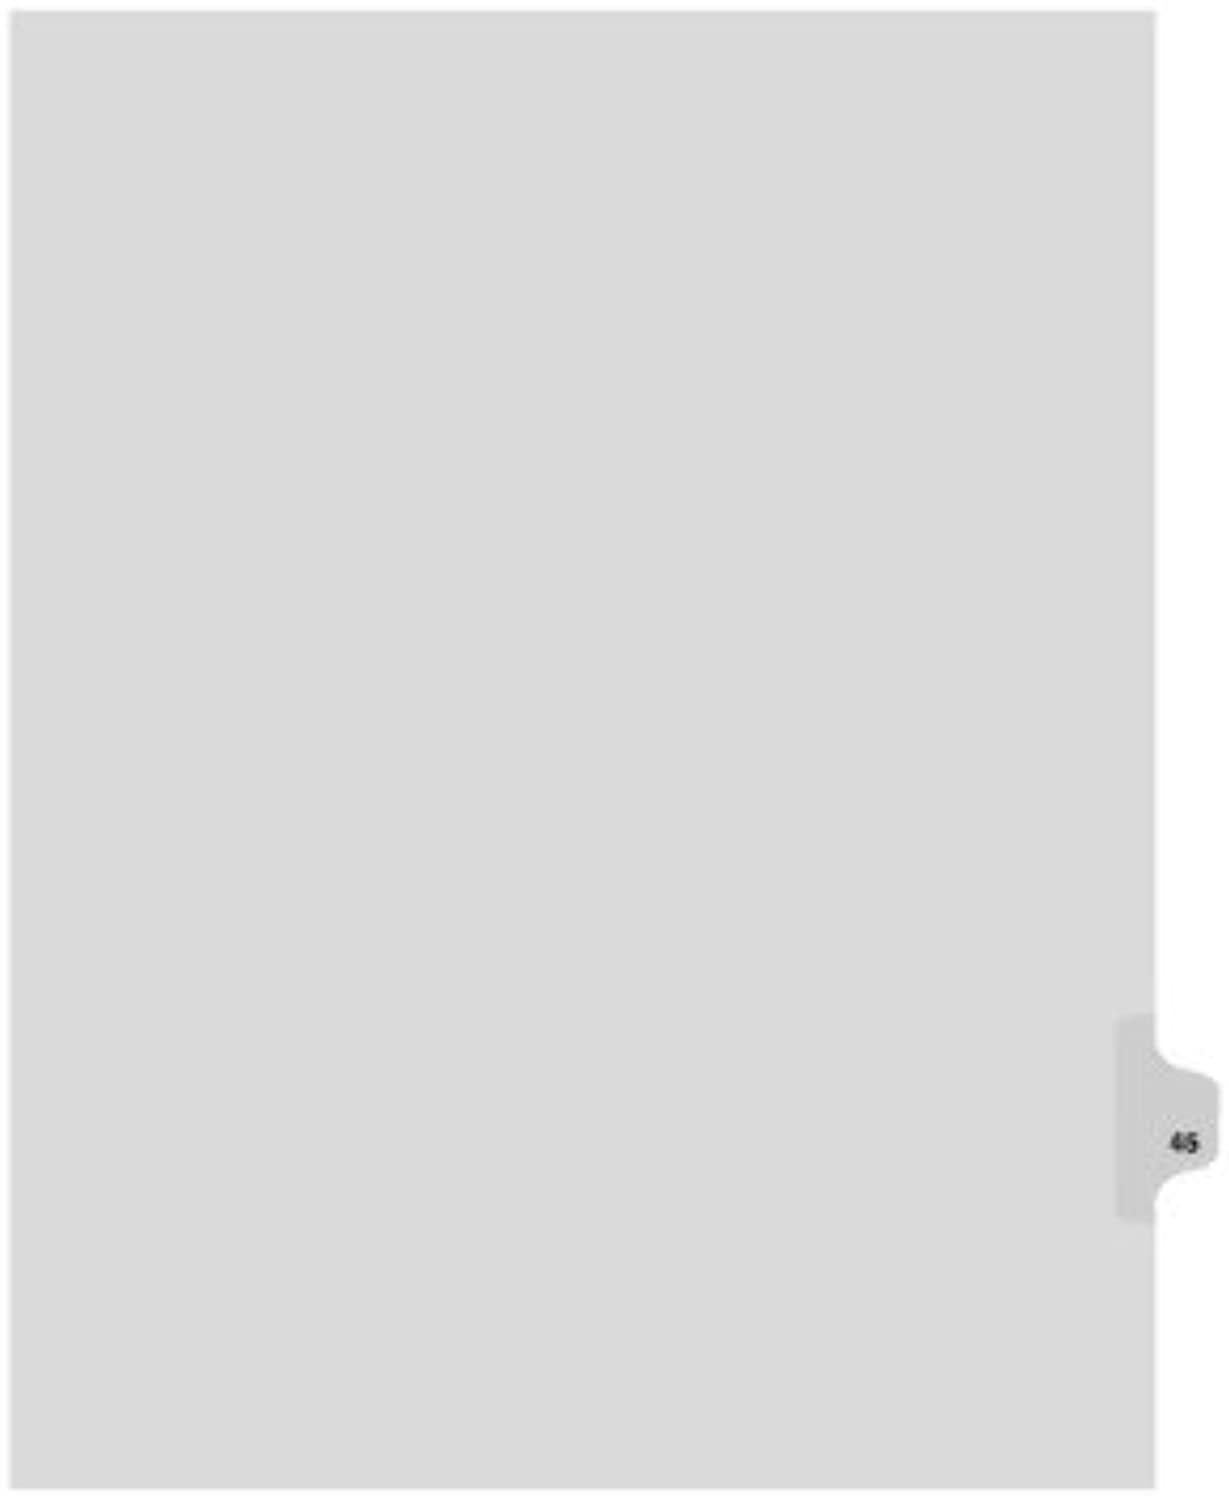 Kleer-Fax Letter Größe Individual Number Index Dividers, Side Tab, 1 25th Cut, 25 Sheets per Pack, Weiß, Number 45 (82245) by Kleer Fax B0141O6XSS  | Discount